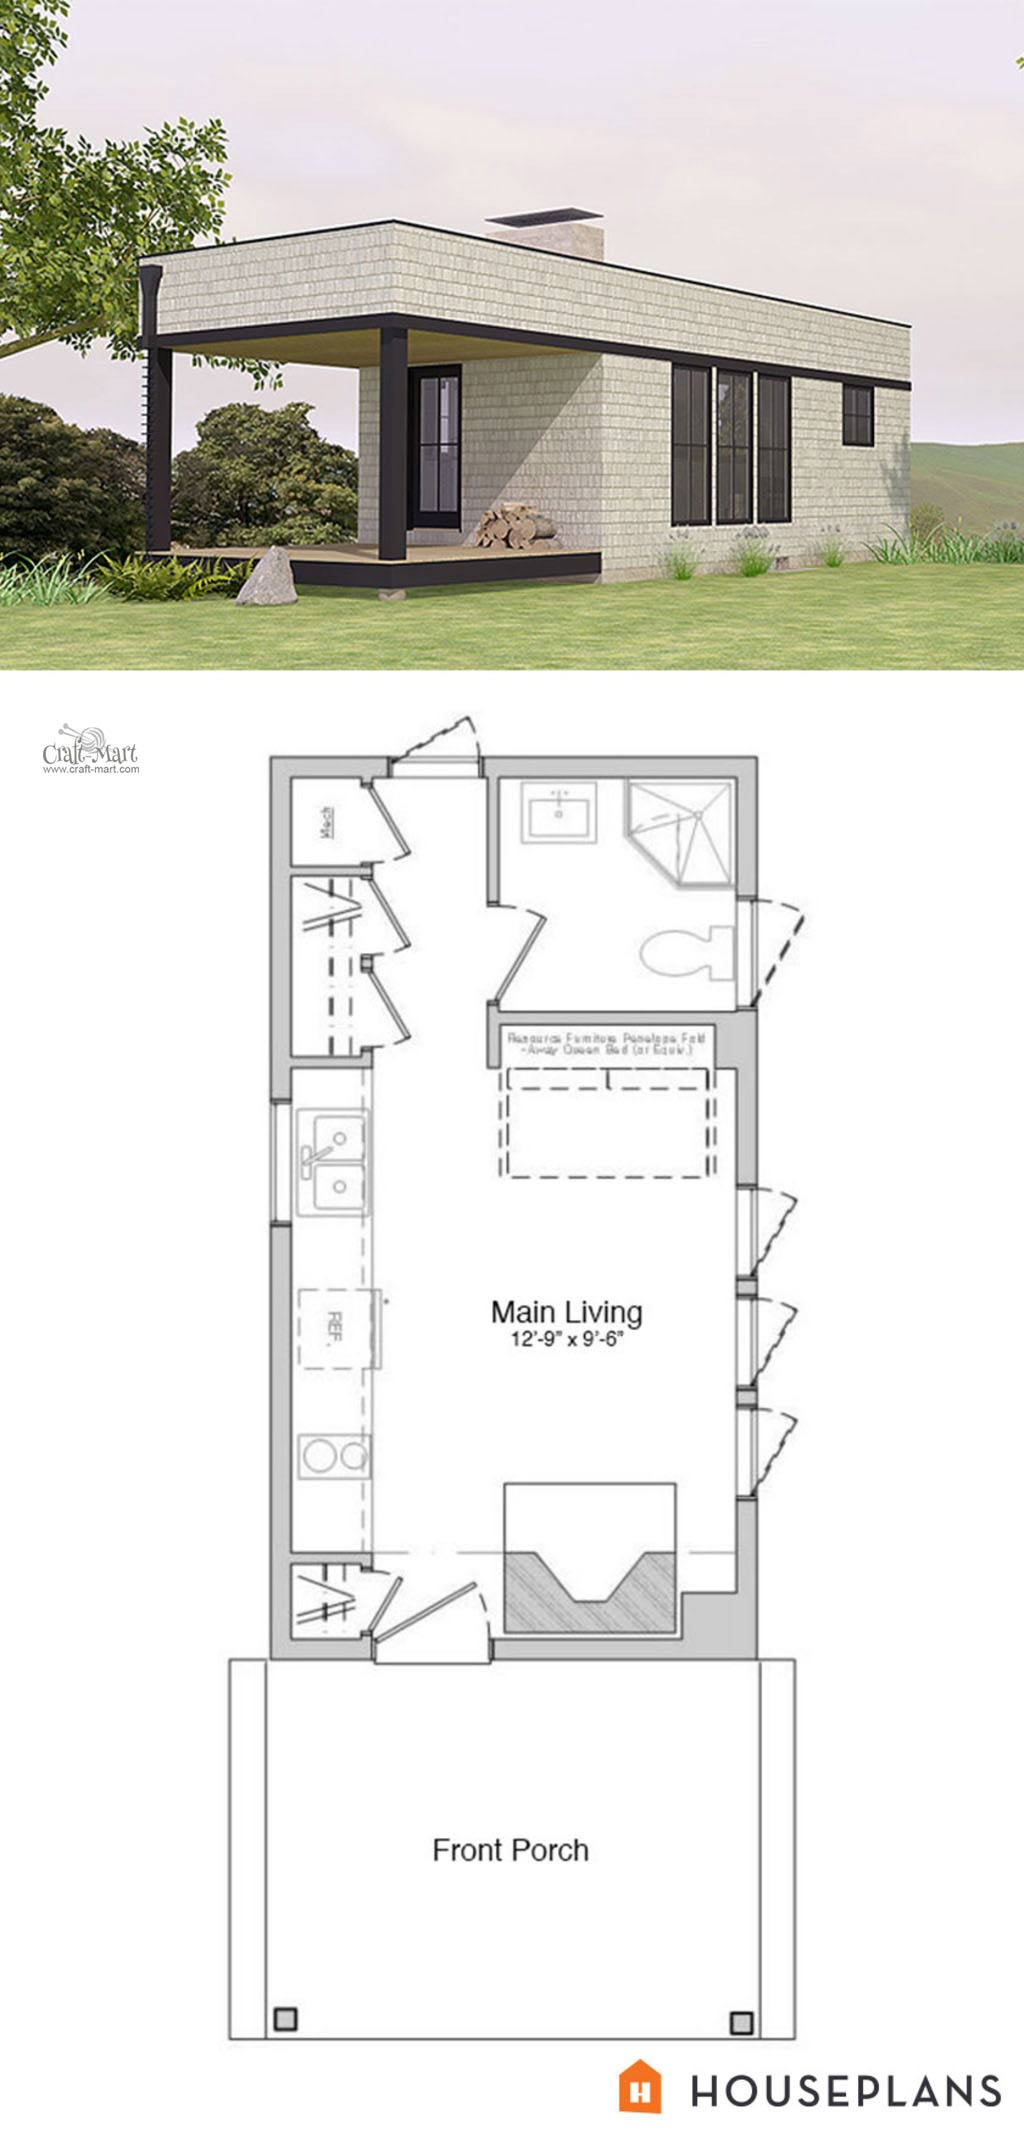 Unique Small House Plans Lovely 27 Adorable Free Tiny House Floor Plans Craft Mart